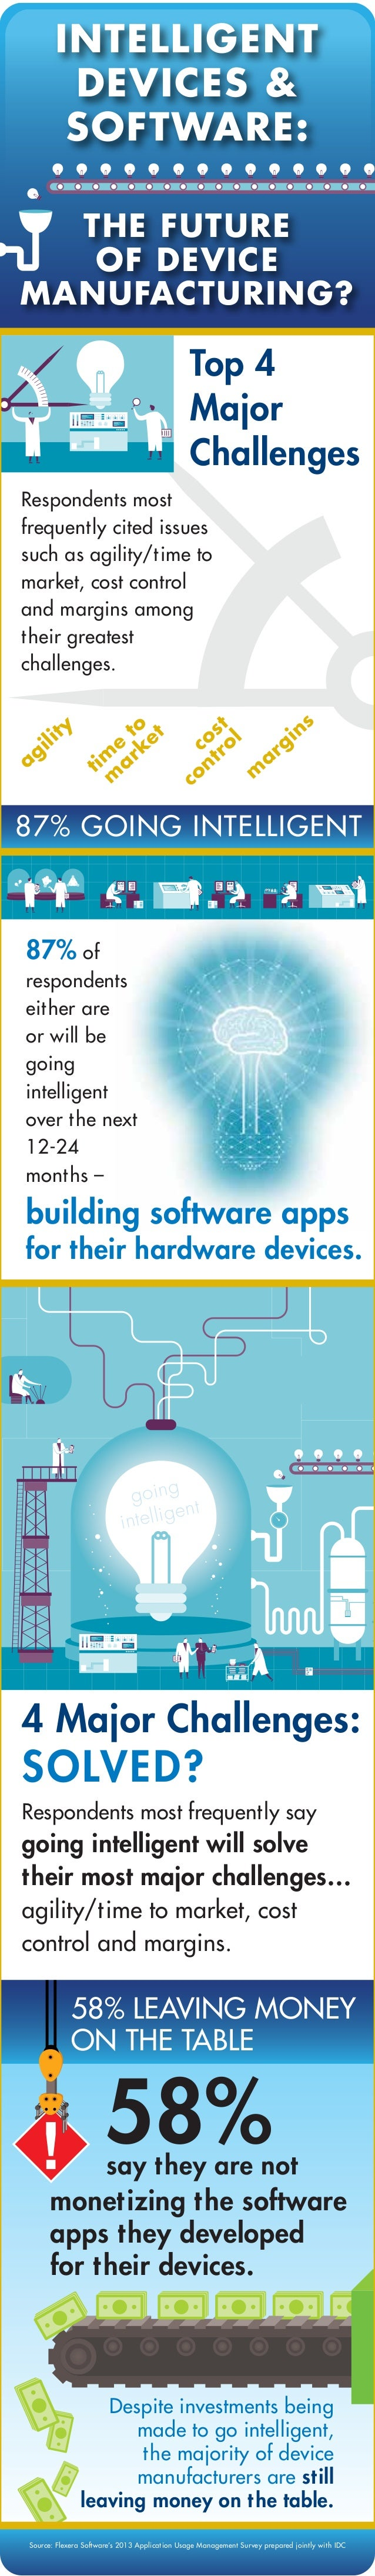 INTELLIGENT DEVICES & SOFTWARE: THE FUTURE OF DEVICE MANUFACTURING?  Top 4 Major Challenges Respondents most frequent ly c...